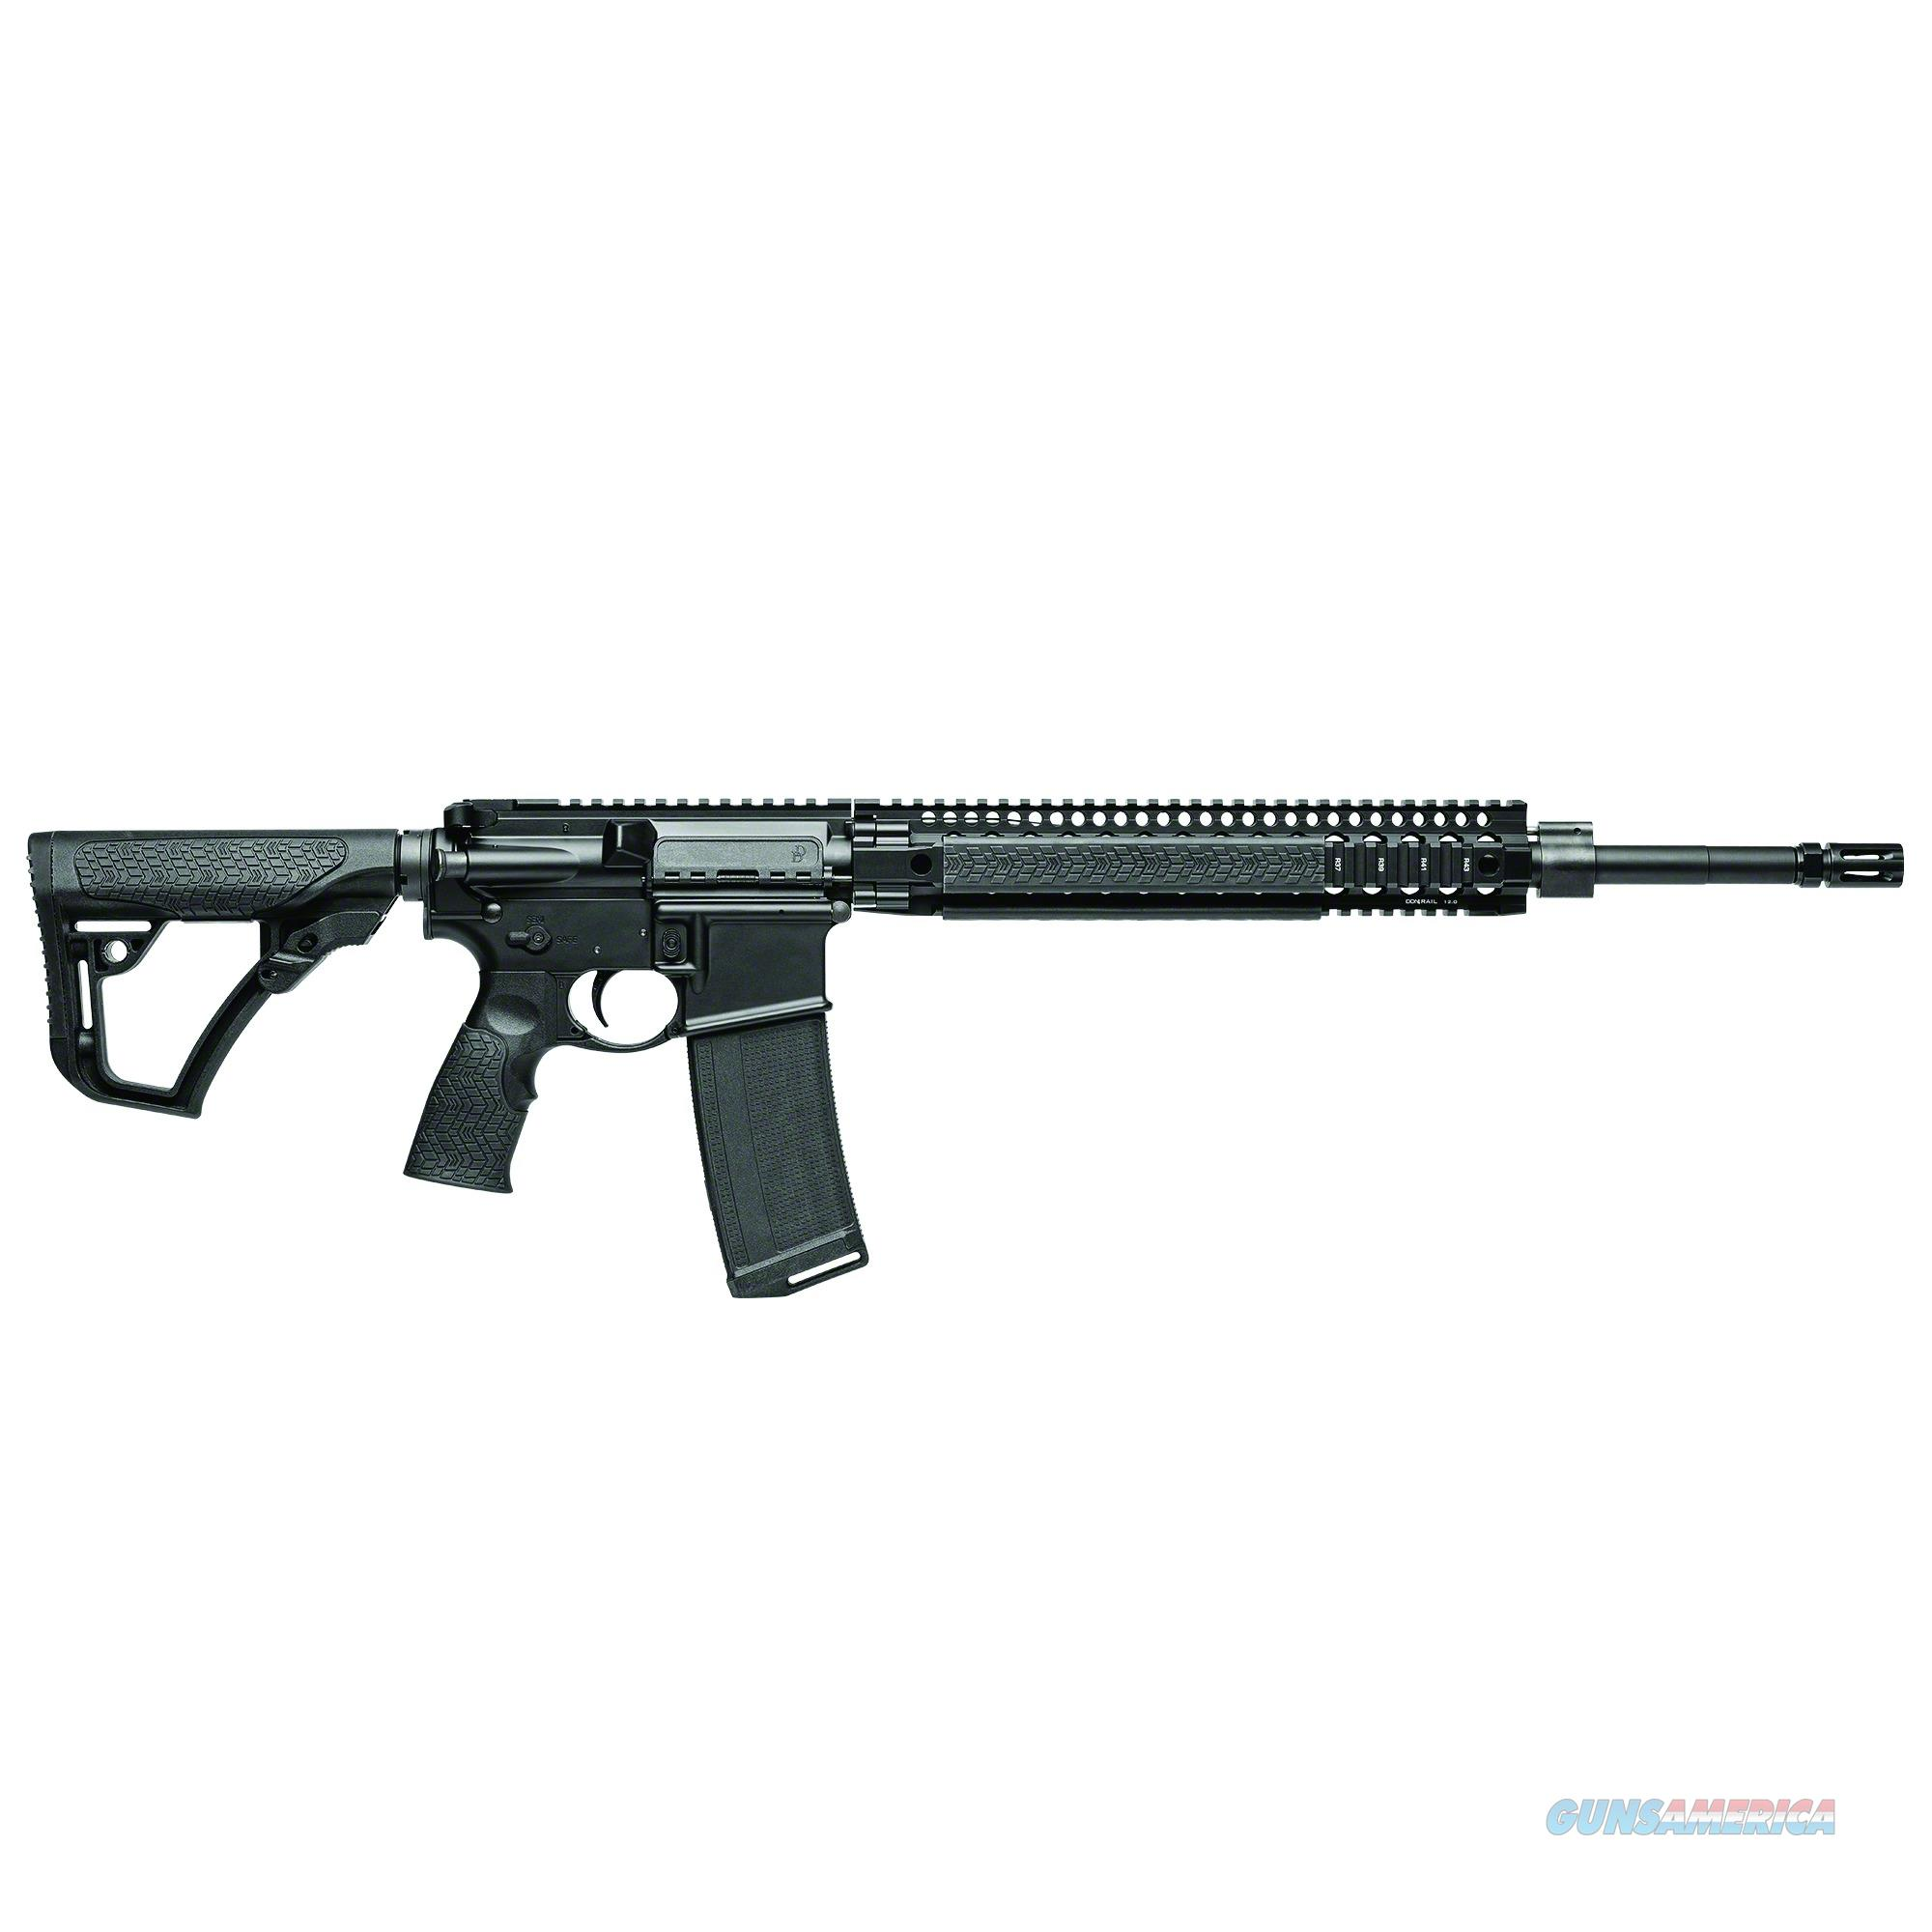 "DANIEL DEFENSE DD MK12 SPR 18"" S/S BBL NO MAG SEMI AUTO RIFLE 02-142-13175-067  Guns > Rifles > D Misc Rifles"